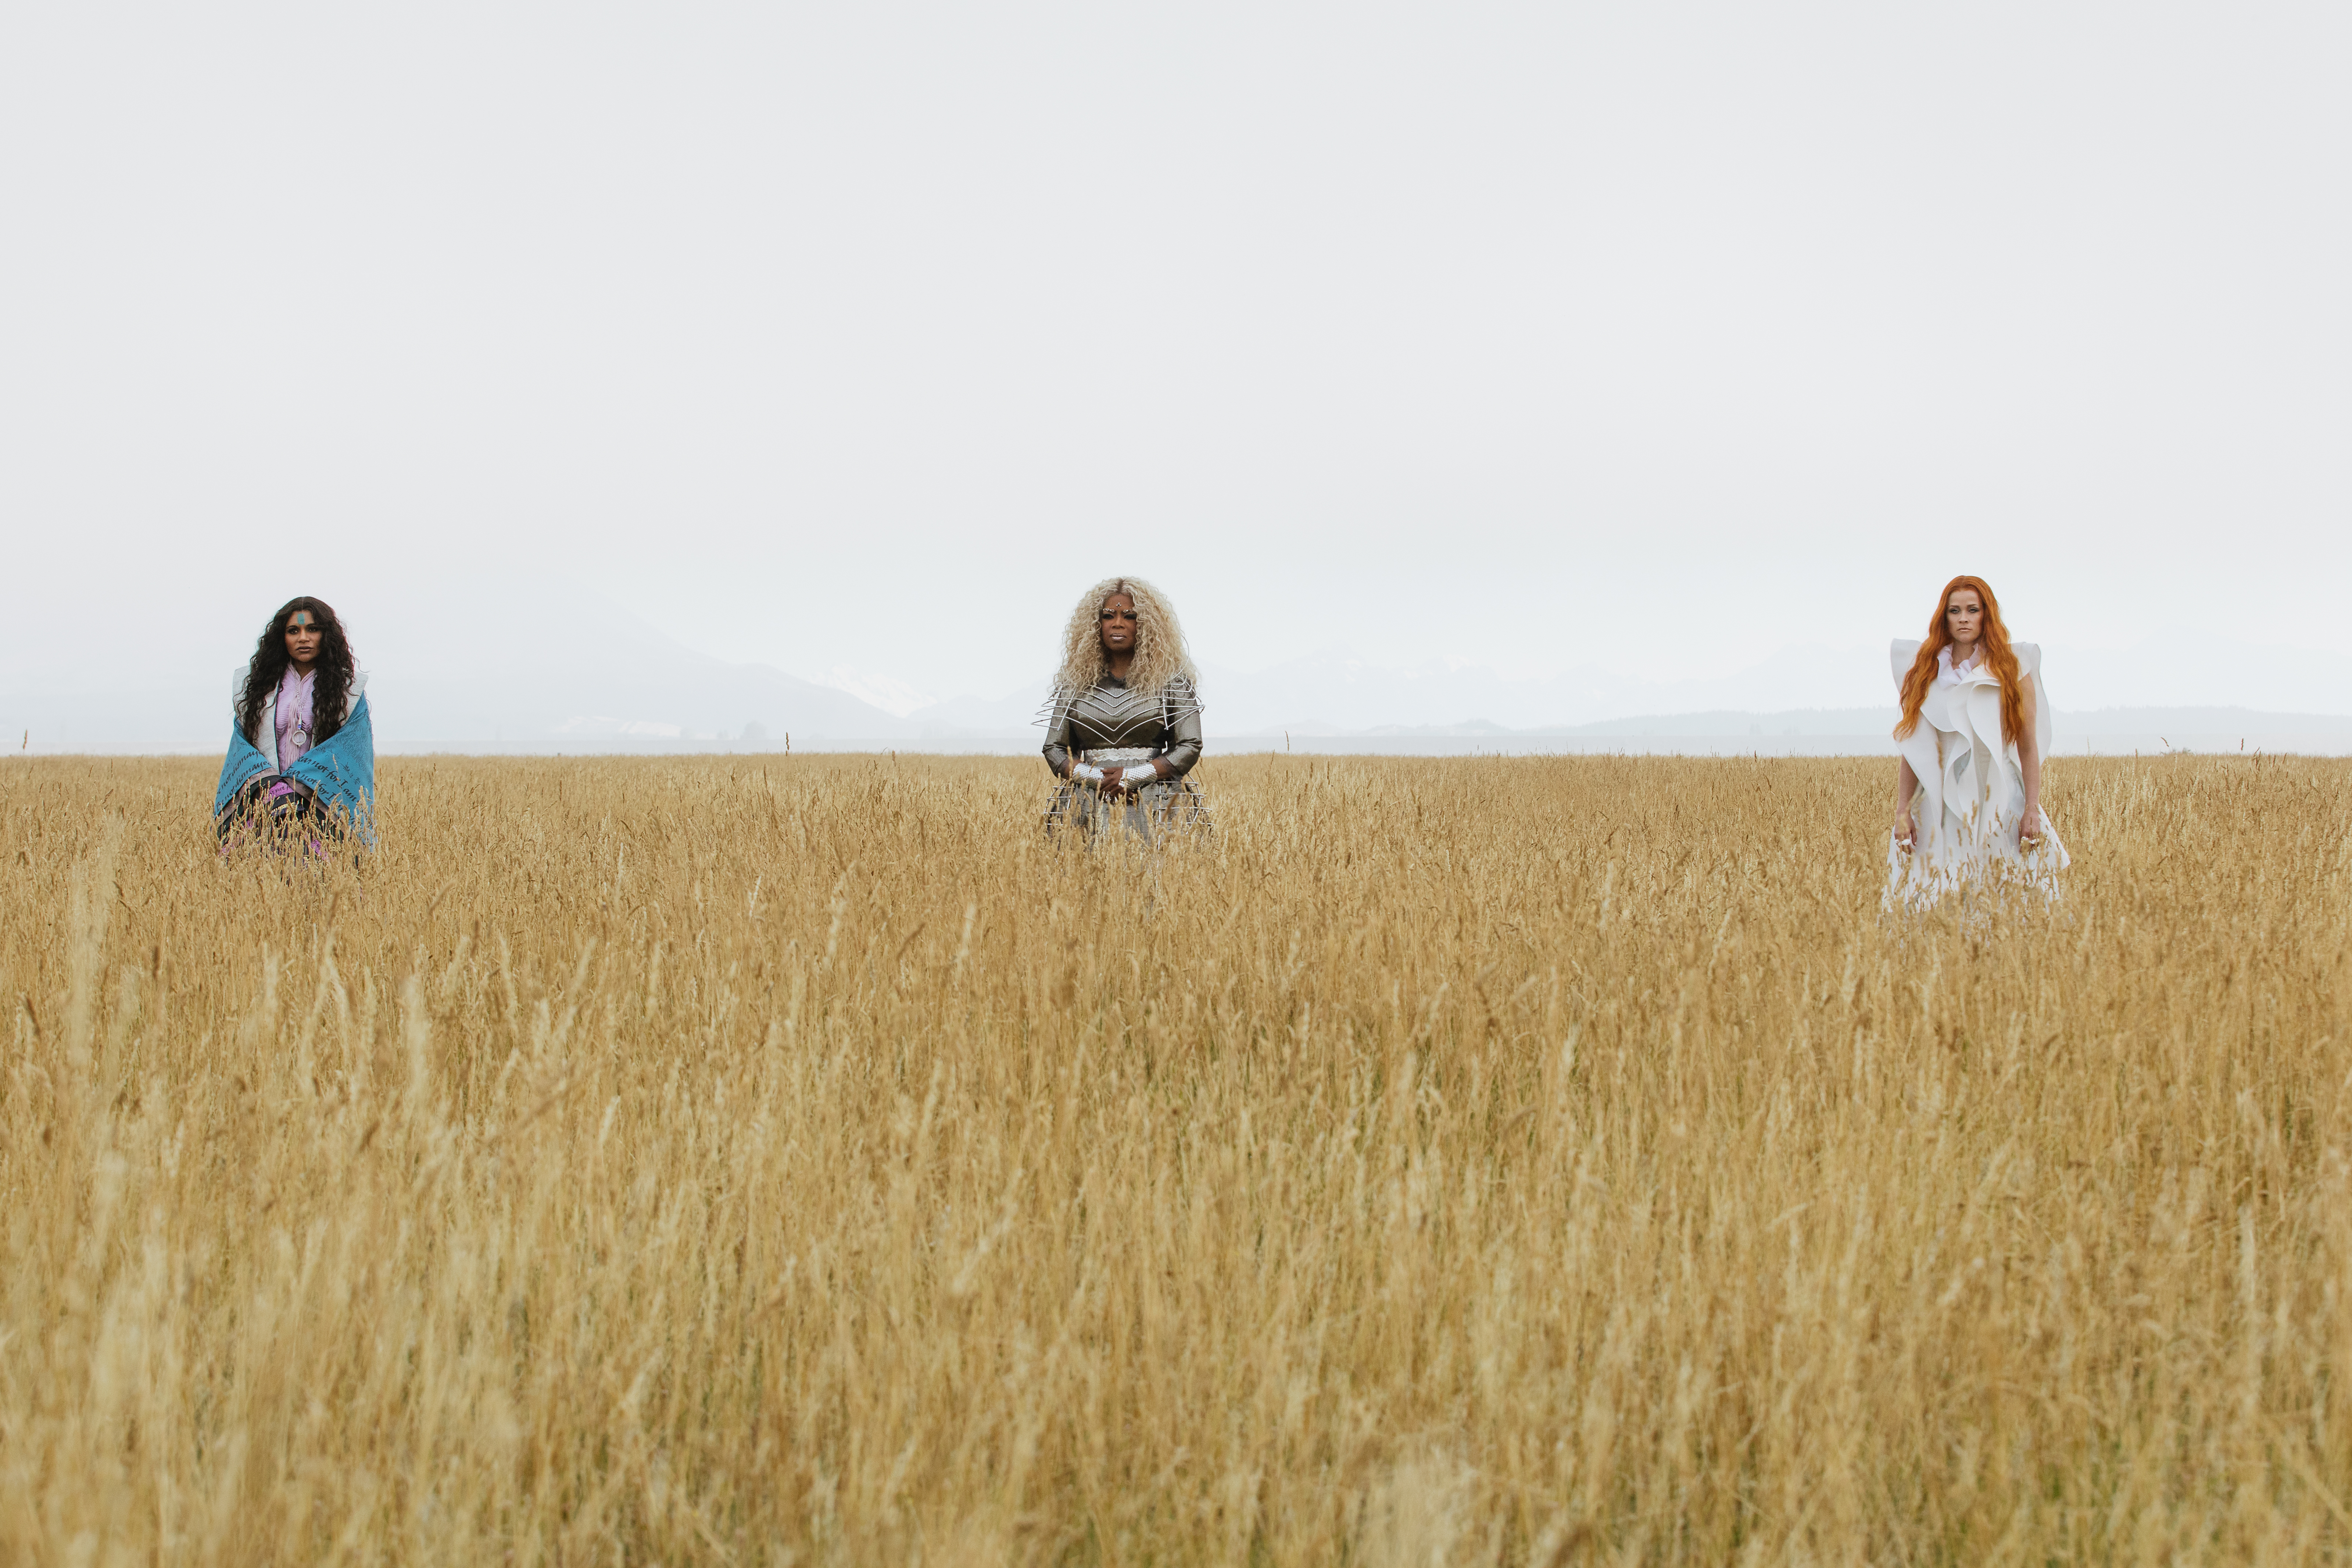 New Trailer Released for Disney's 'A Wrinkle in Time'